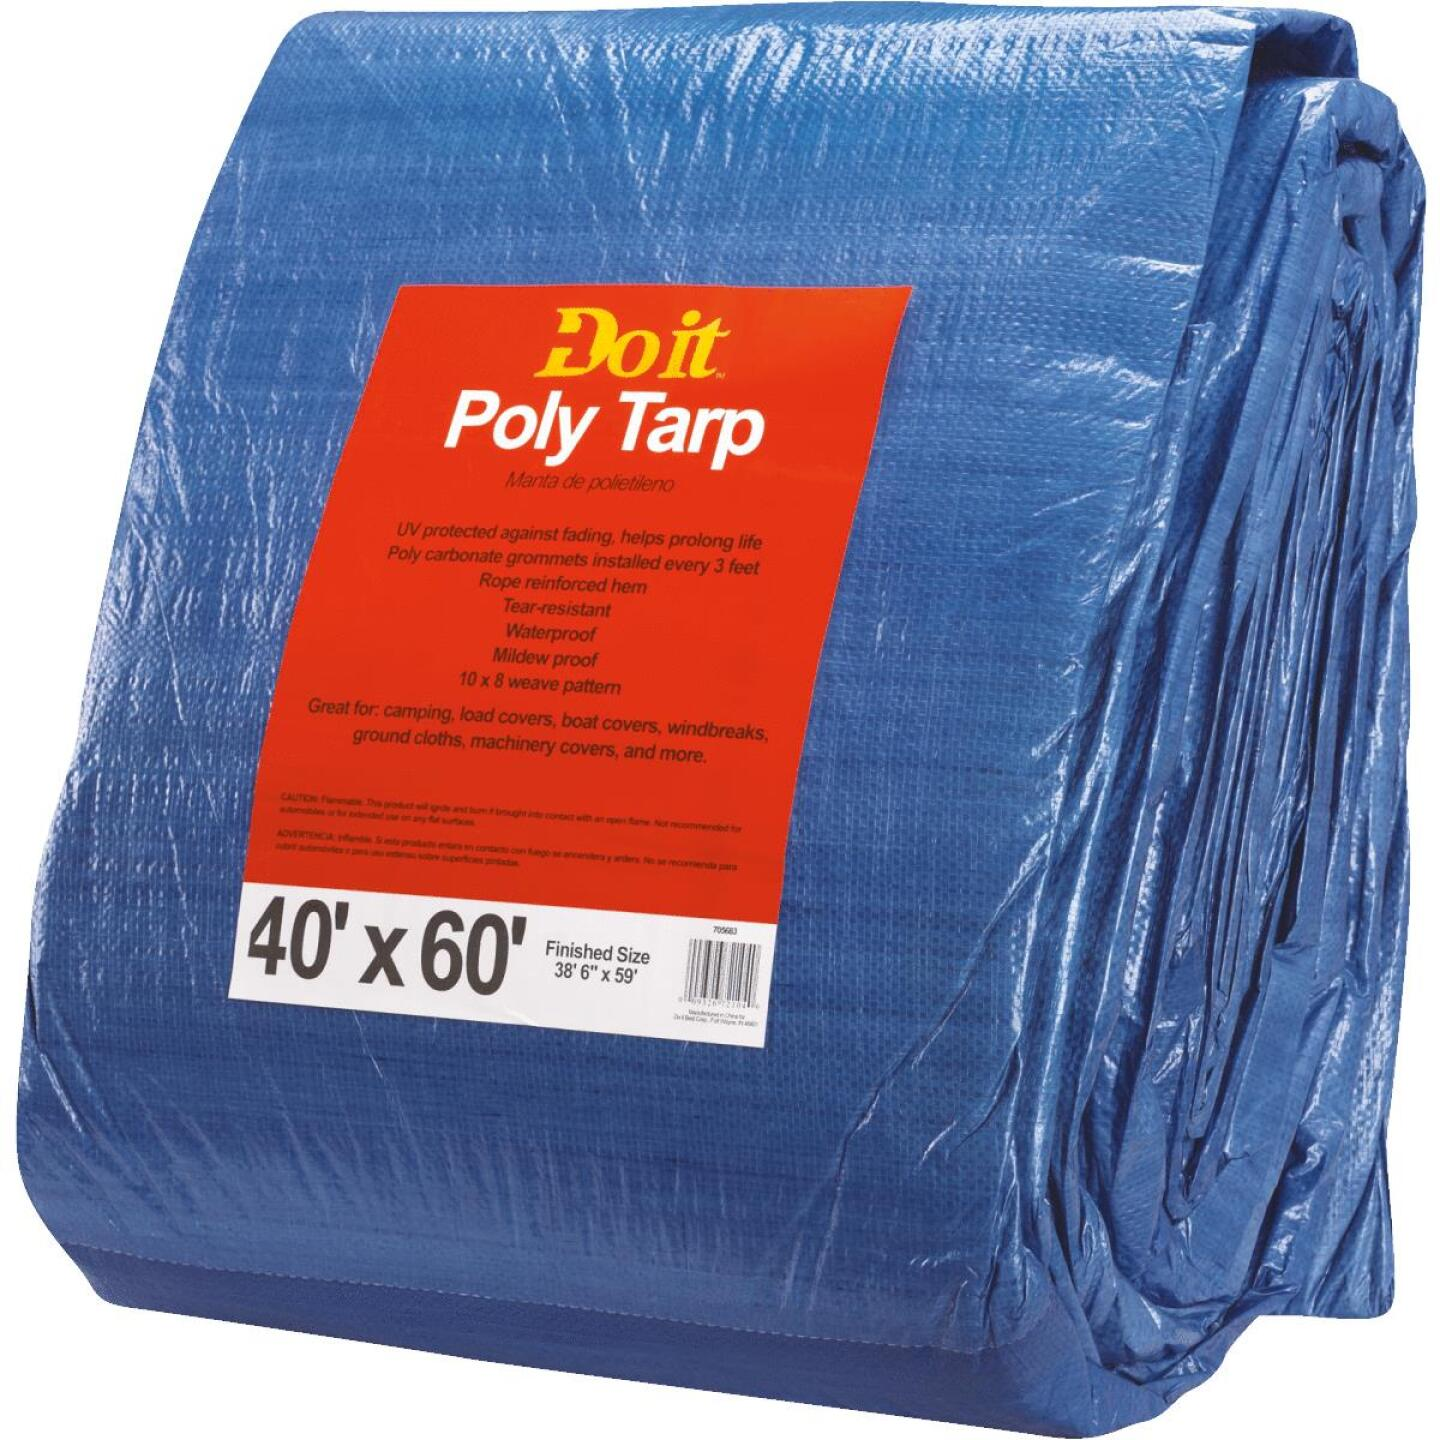 Do it Blue Woven 40 Ft. x 60 Ft. Medium Duty Poly Tarp Image 2